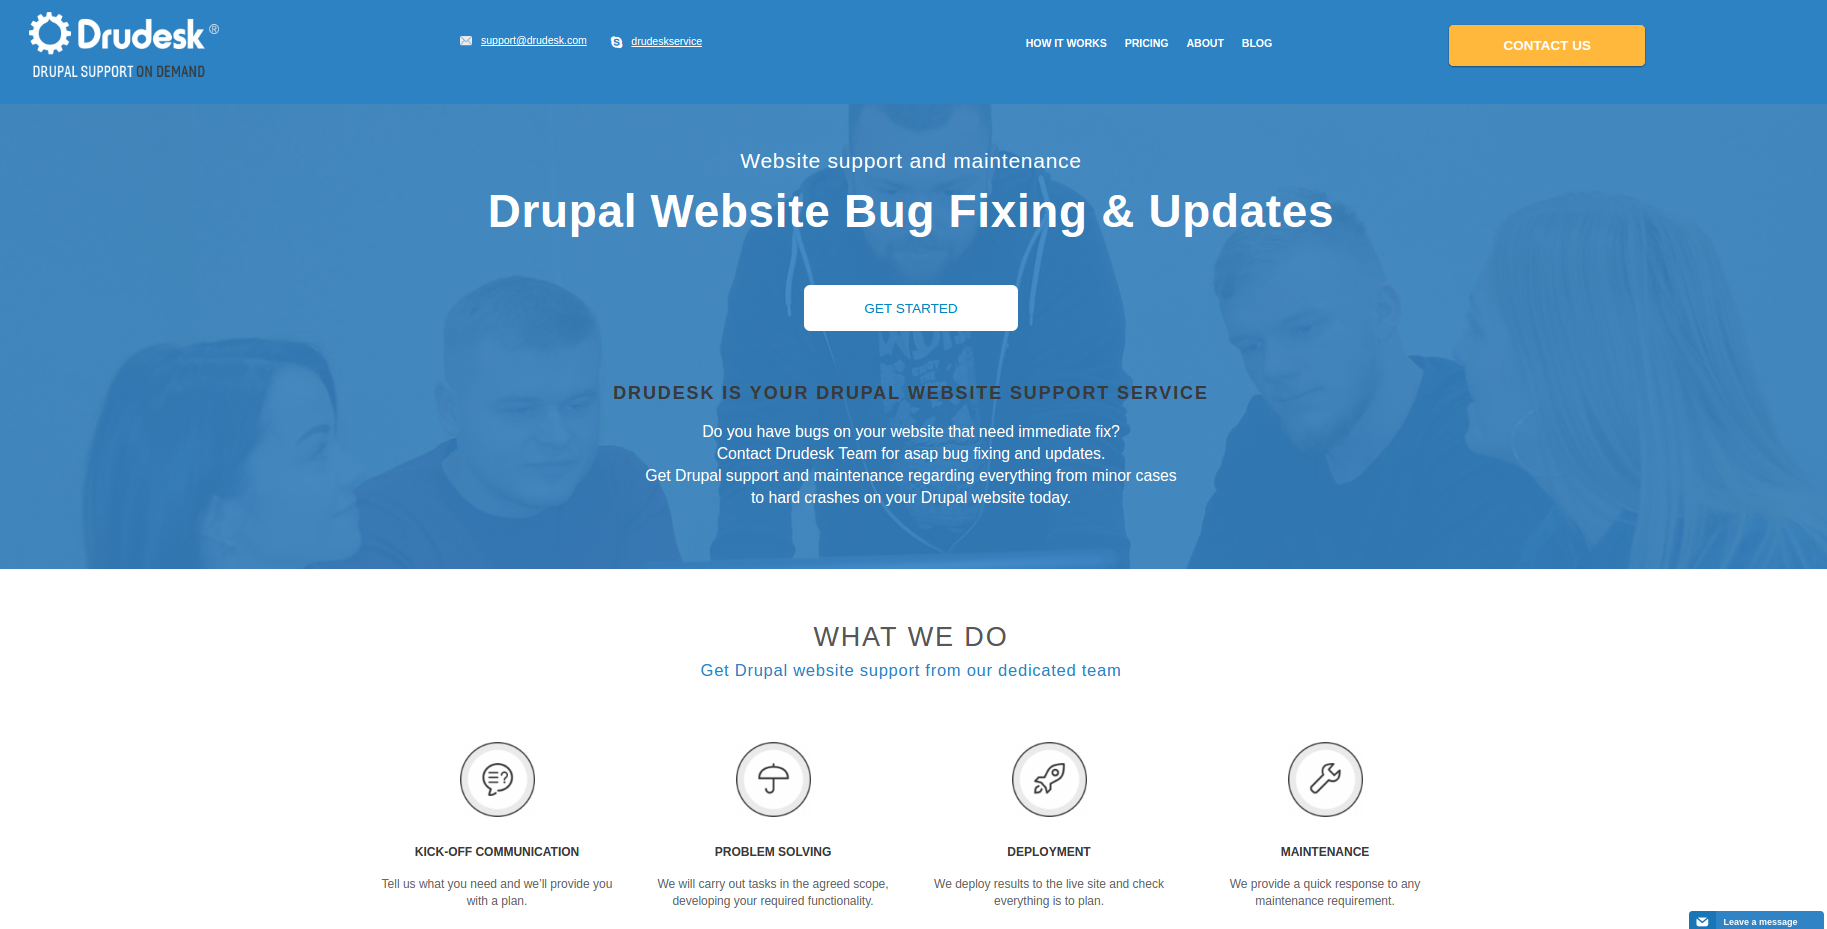 Migrate Drudesk from Drupal 7 to Drupal 8